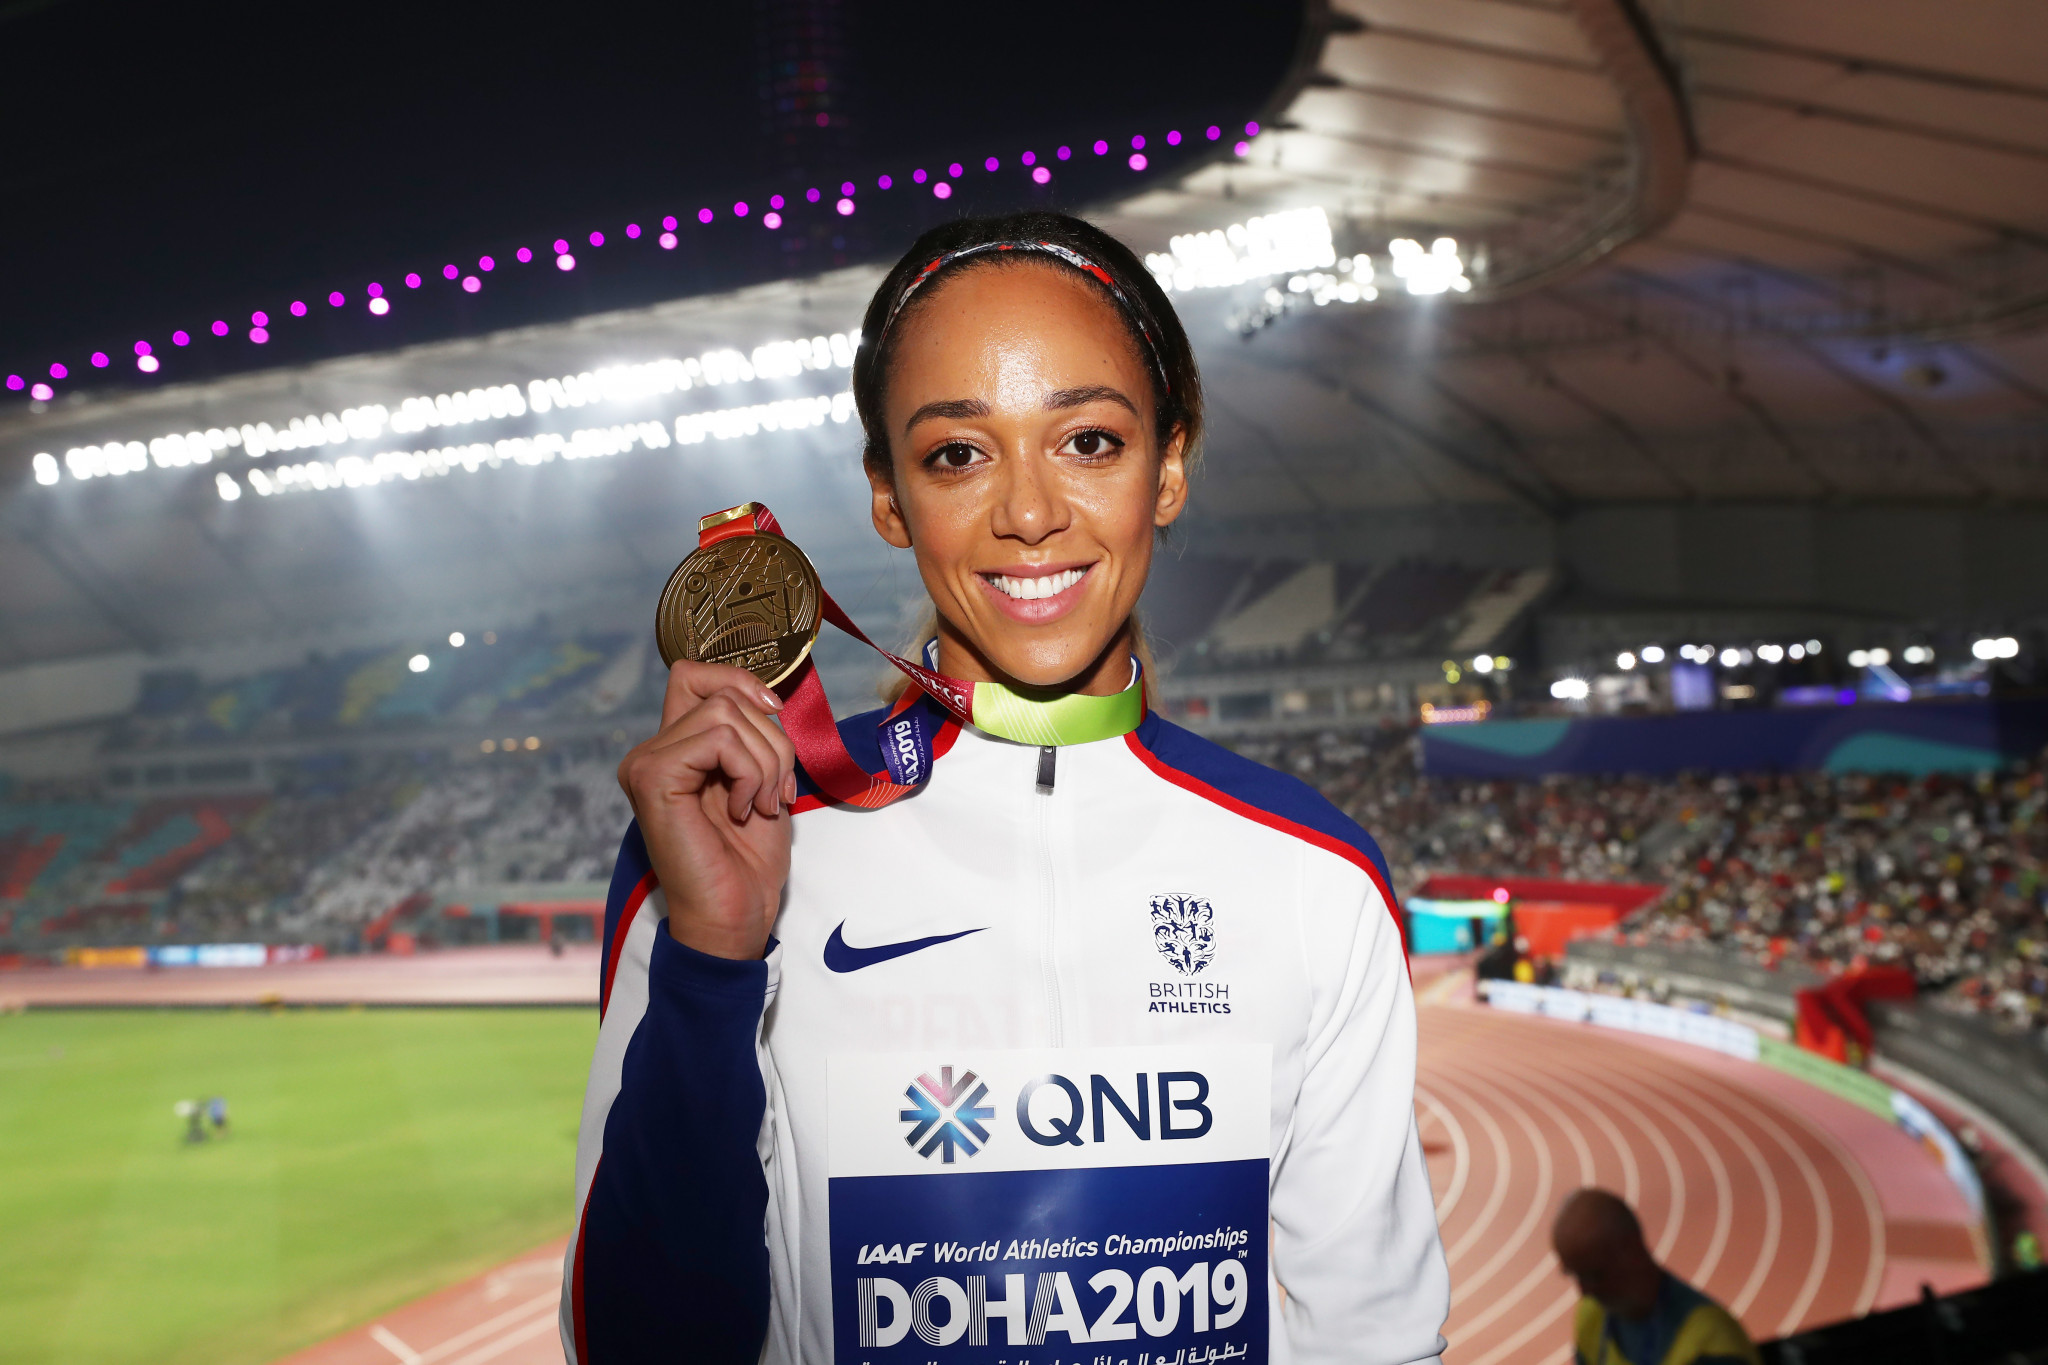 Britain's Katarina Johnson-Thompson received the medal she had won the previous evening in the women's heptathlon ©Getty Images